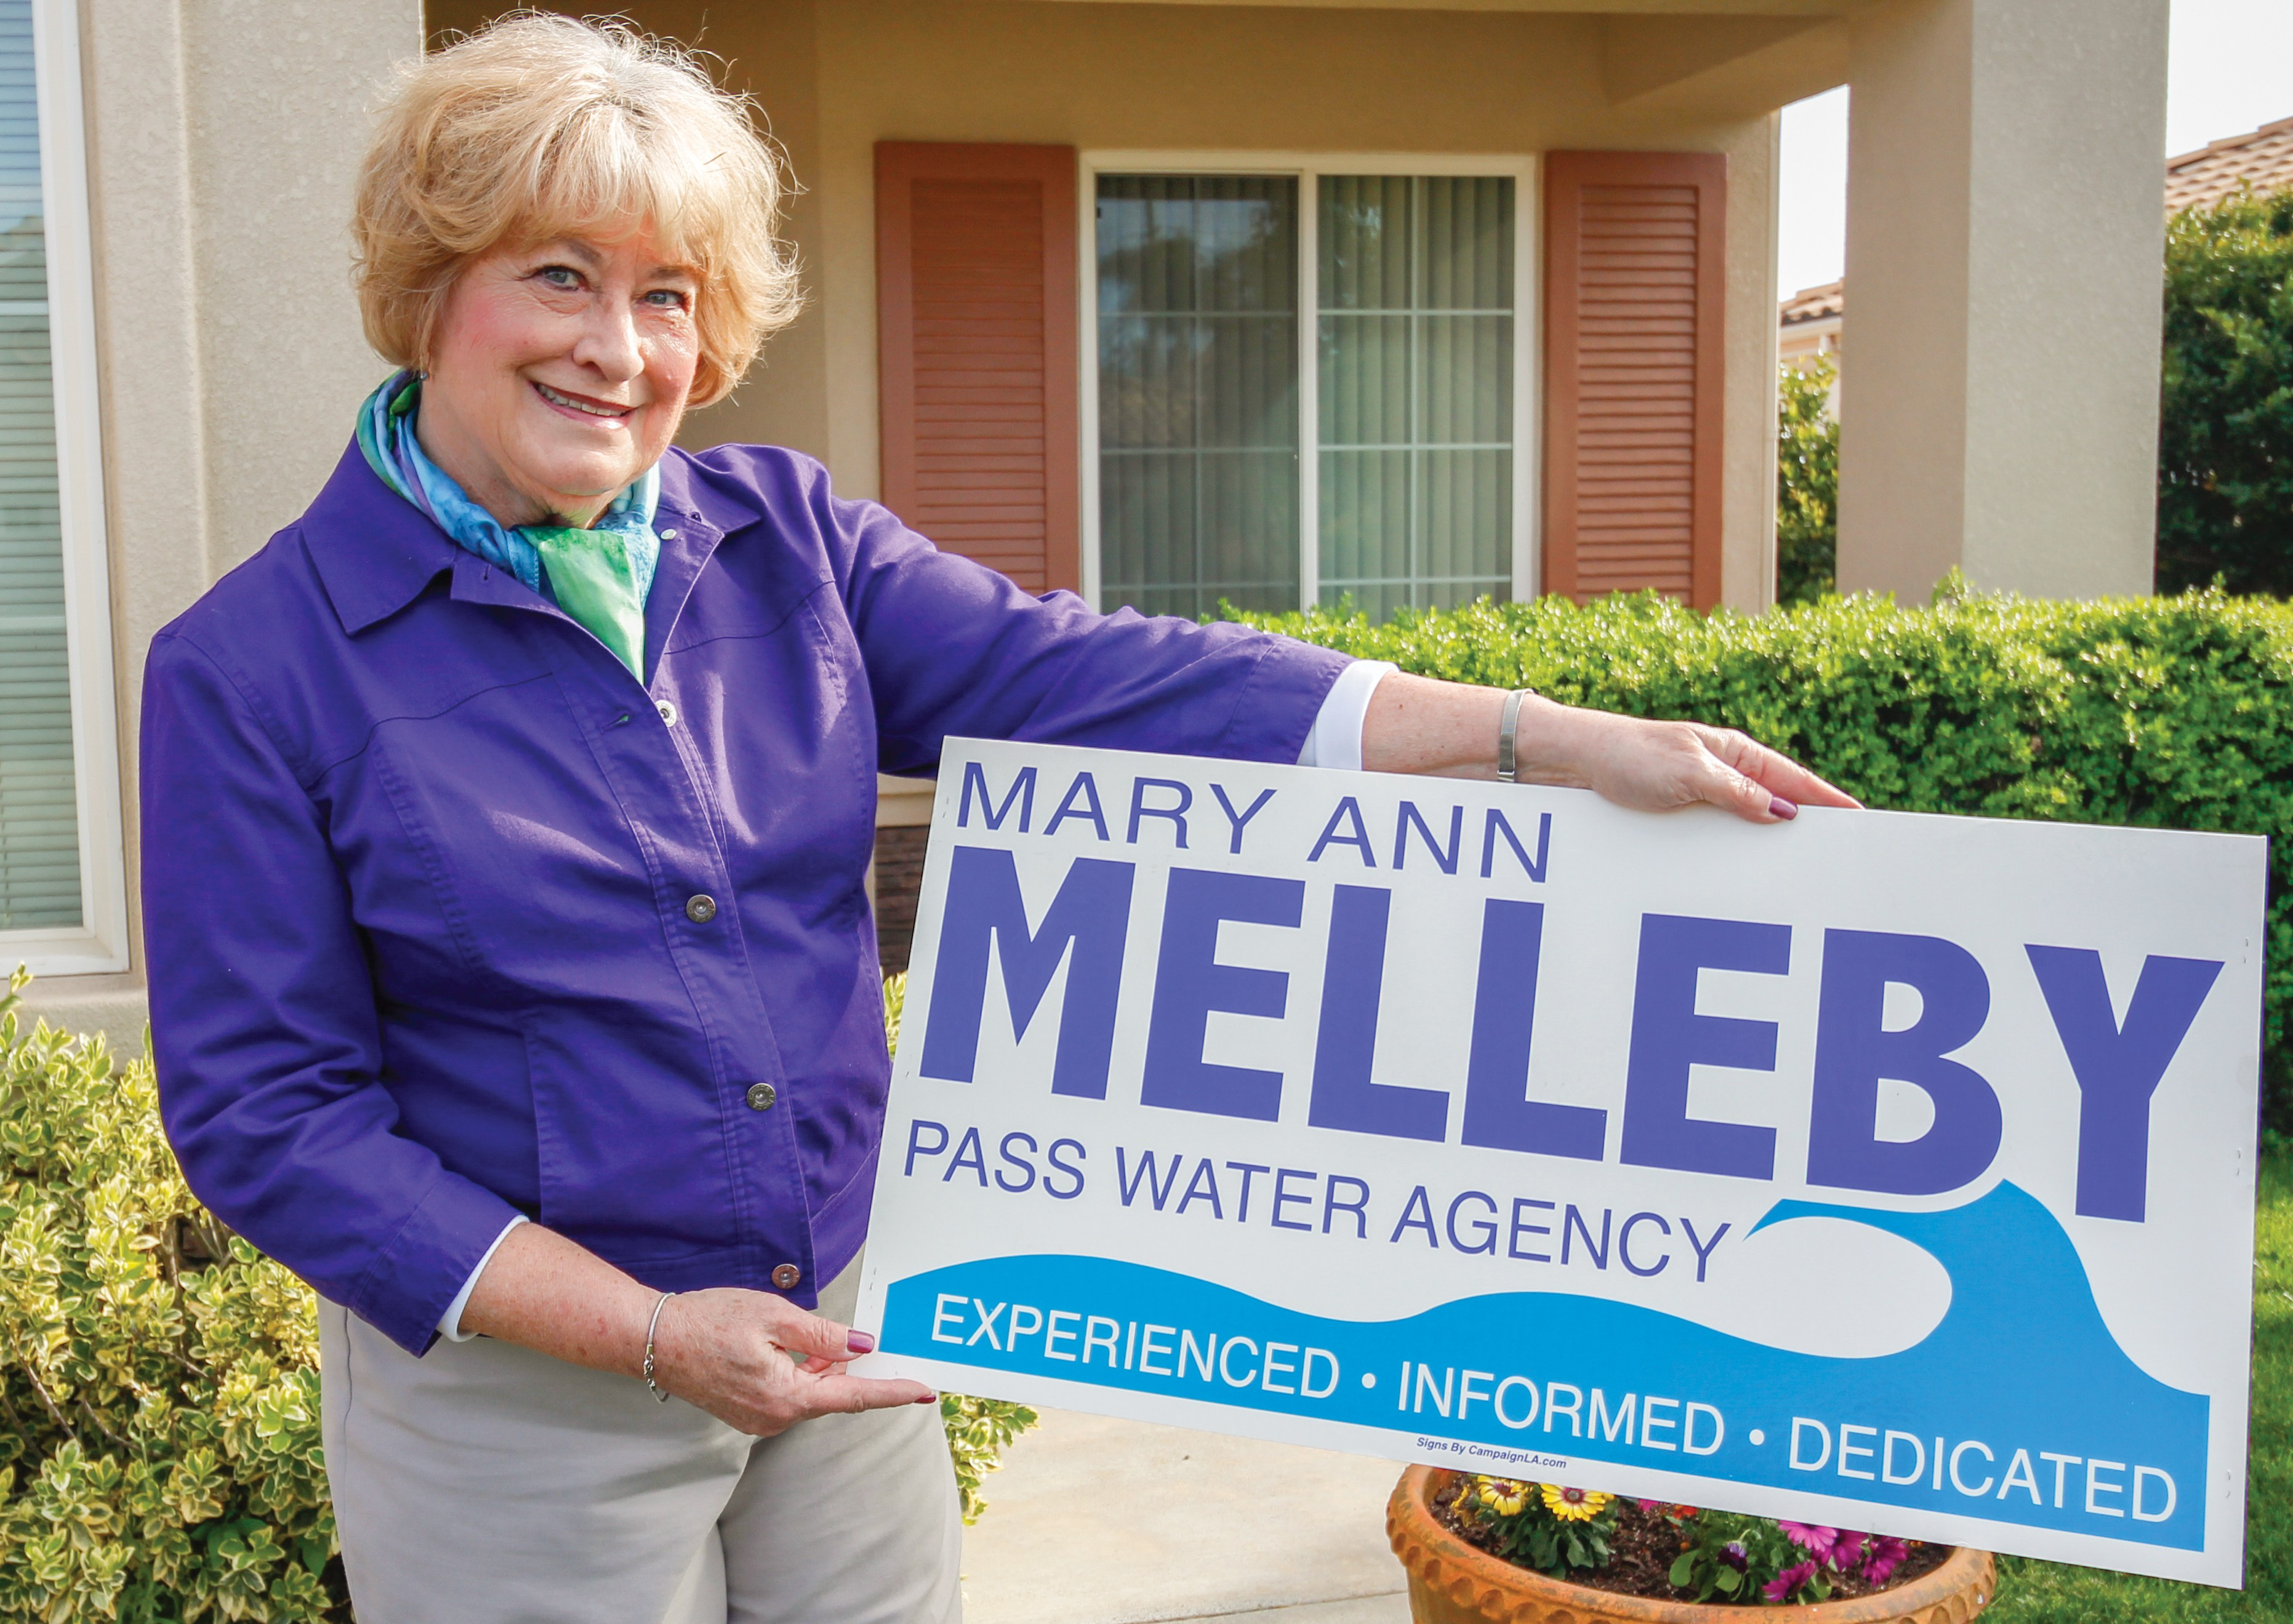 Mary Ann Melleby: A Trustee's Journey